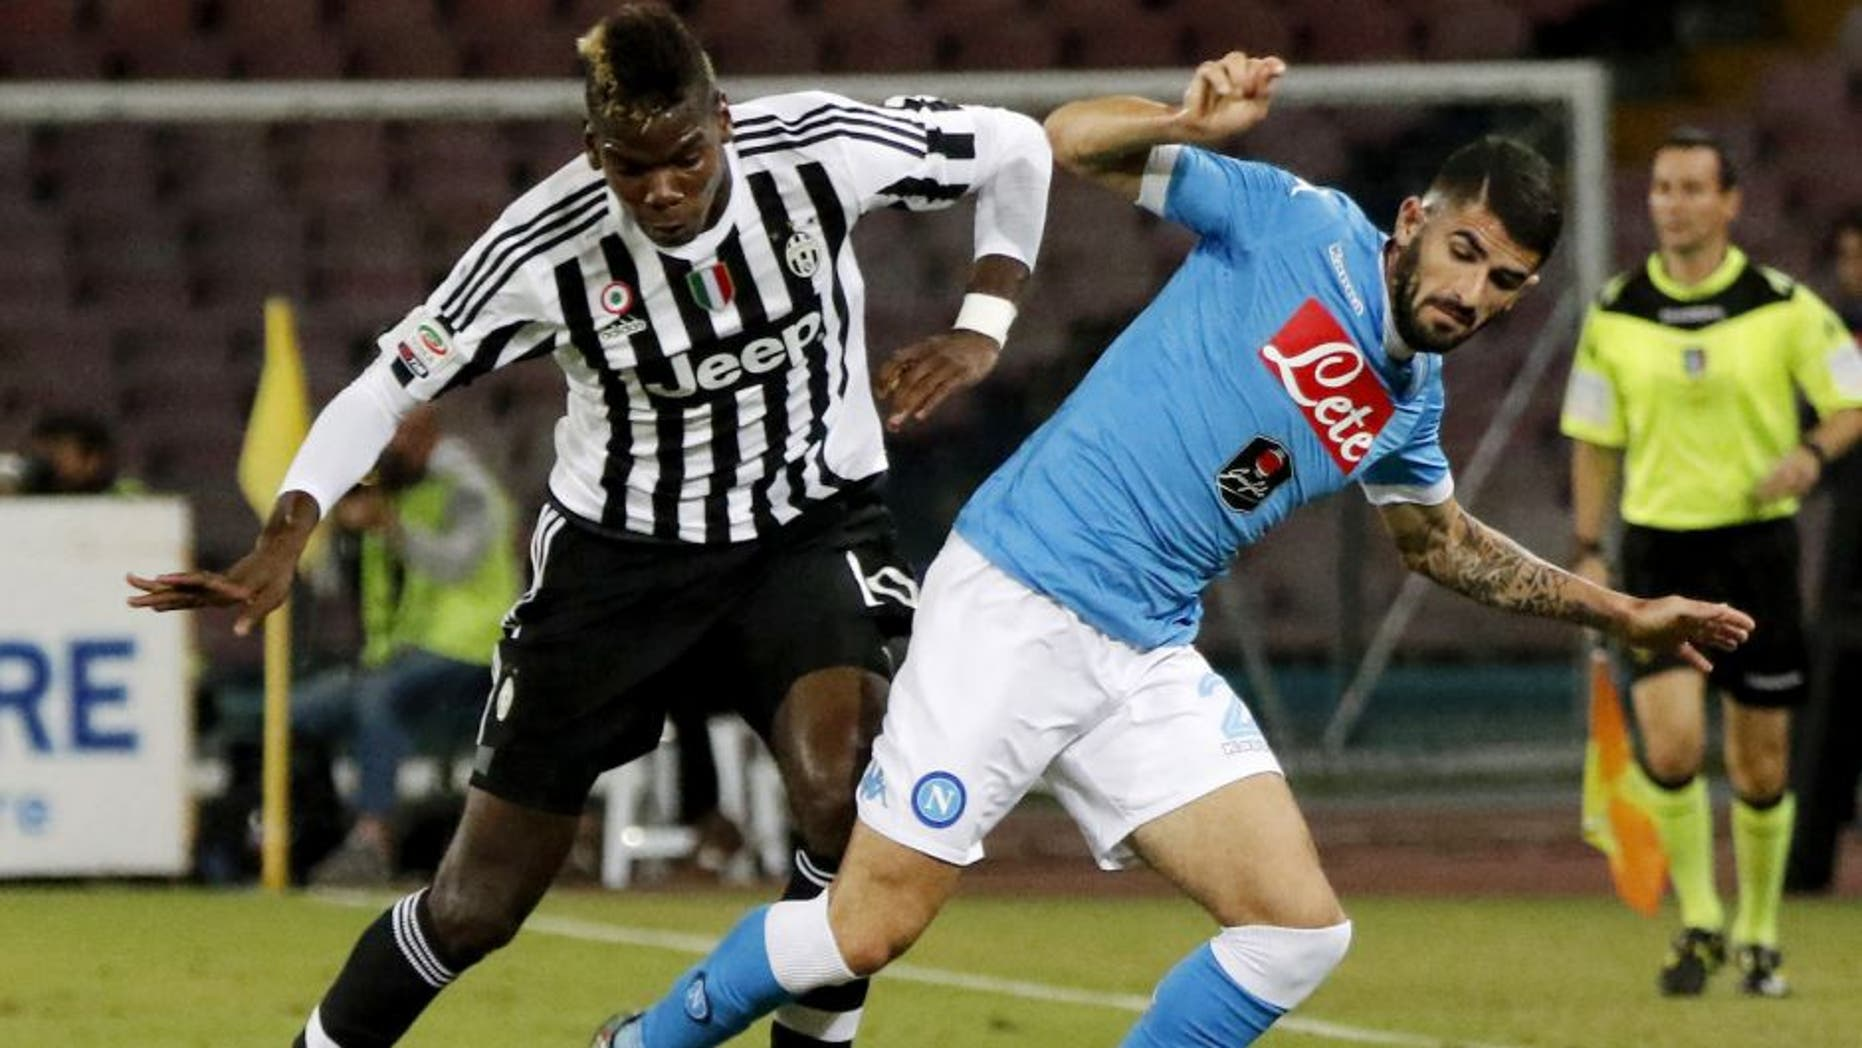 Juventus' French midfielder Paul Pogba (L) vies with Napoli's Albanian defender Elseid Hysaj during the Italian Serie A football match SSC Napoli vs FC Juventus on September 26, 2015 at the San Paolo stadium in Naples. AFP PHOTO / CARLO HERMANN (Photo credit should read CARLO HERMANN/AFP/Getty Images)